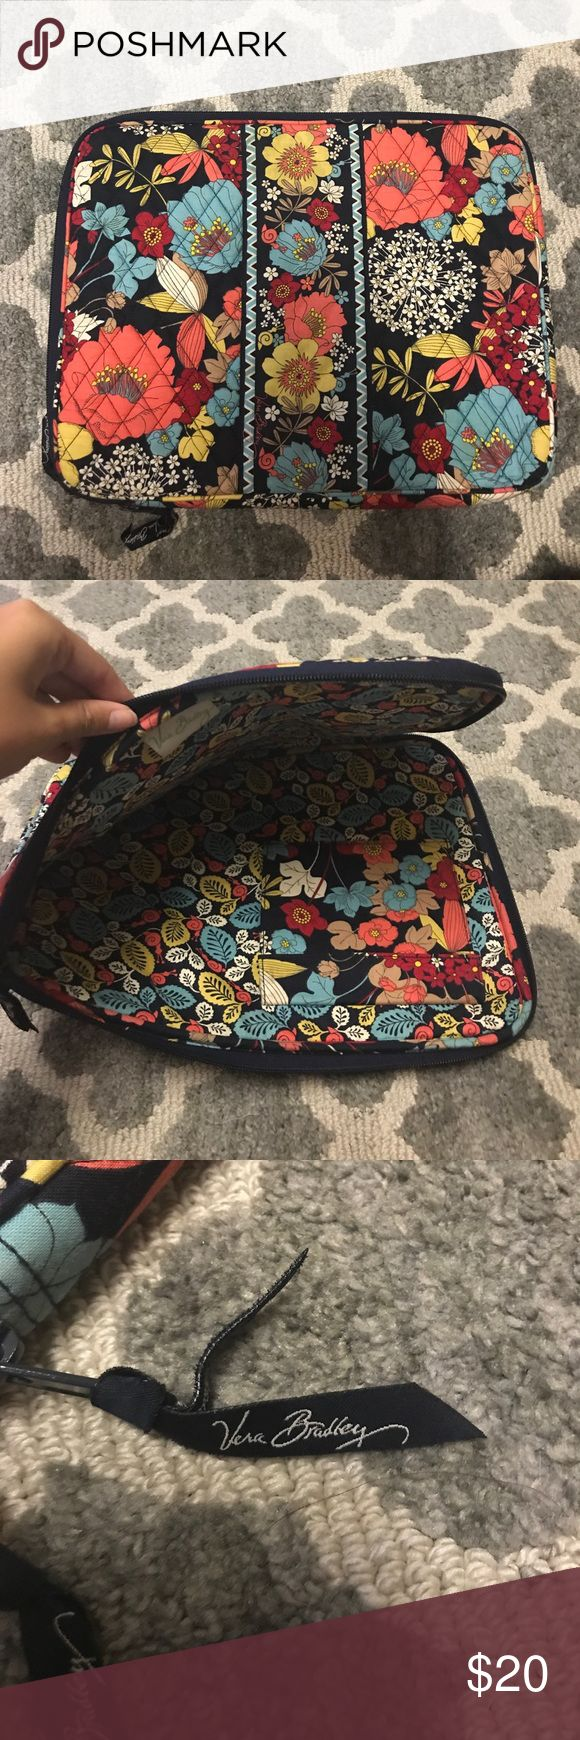 "Like New Vera Bradley Laptop Case! Super cute navy and floral laptop case! Fits 13"" Macs/Laptops! Vera Bradley Accessories Laptop Cases"